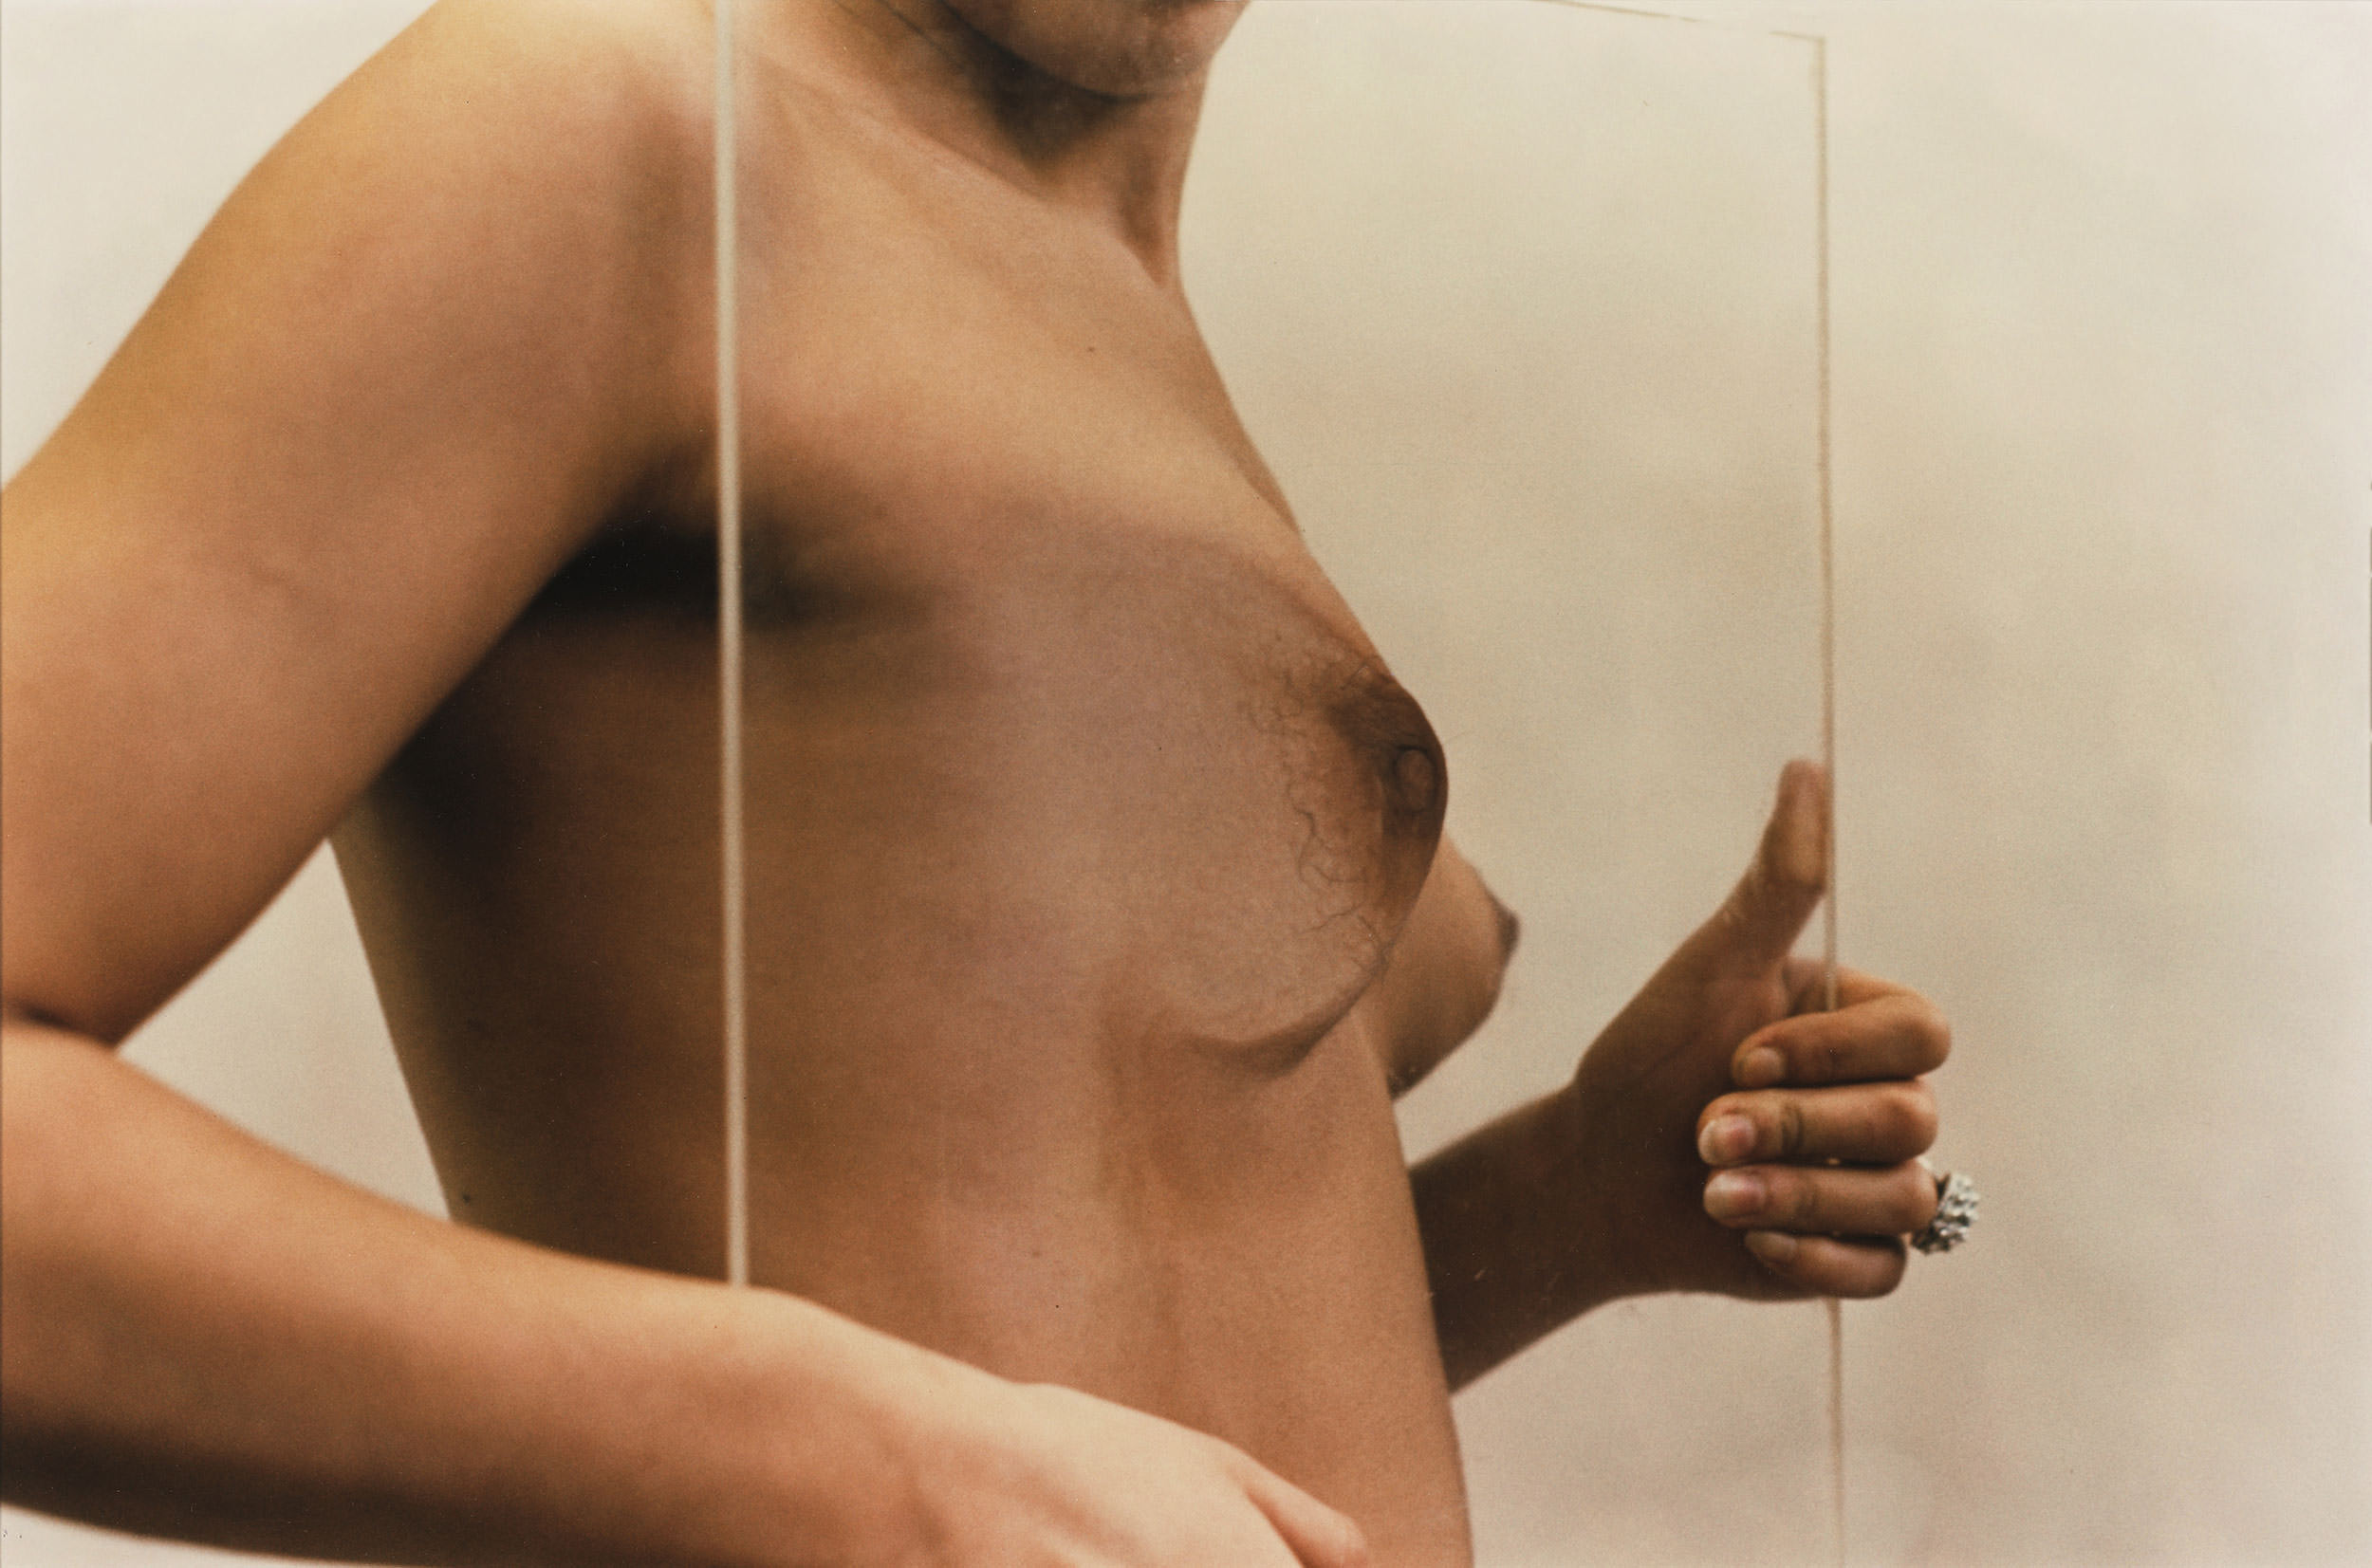 5 Ana Mendieta, Untitled (Glass on Body), 1972.